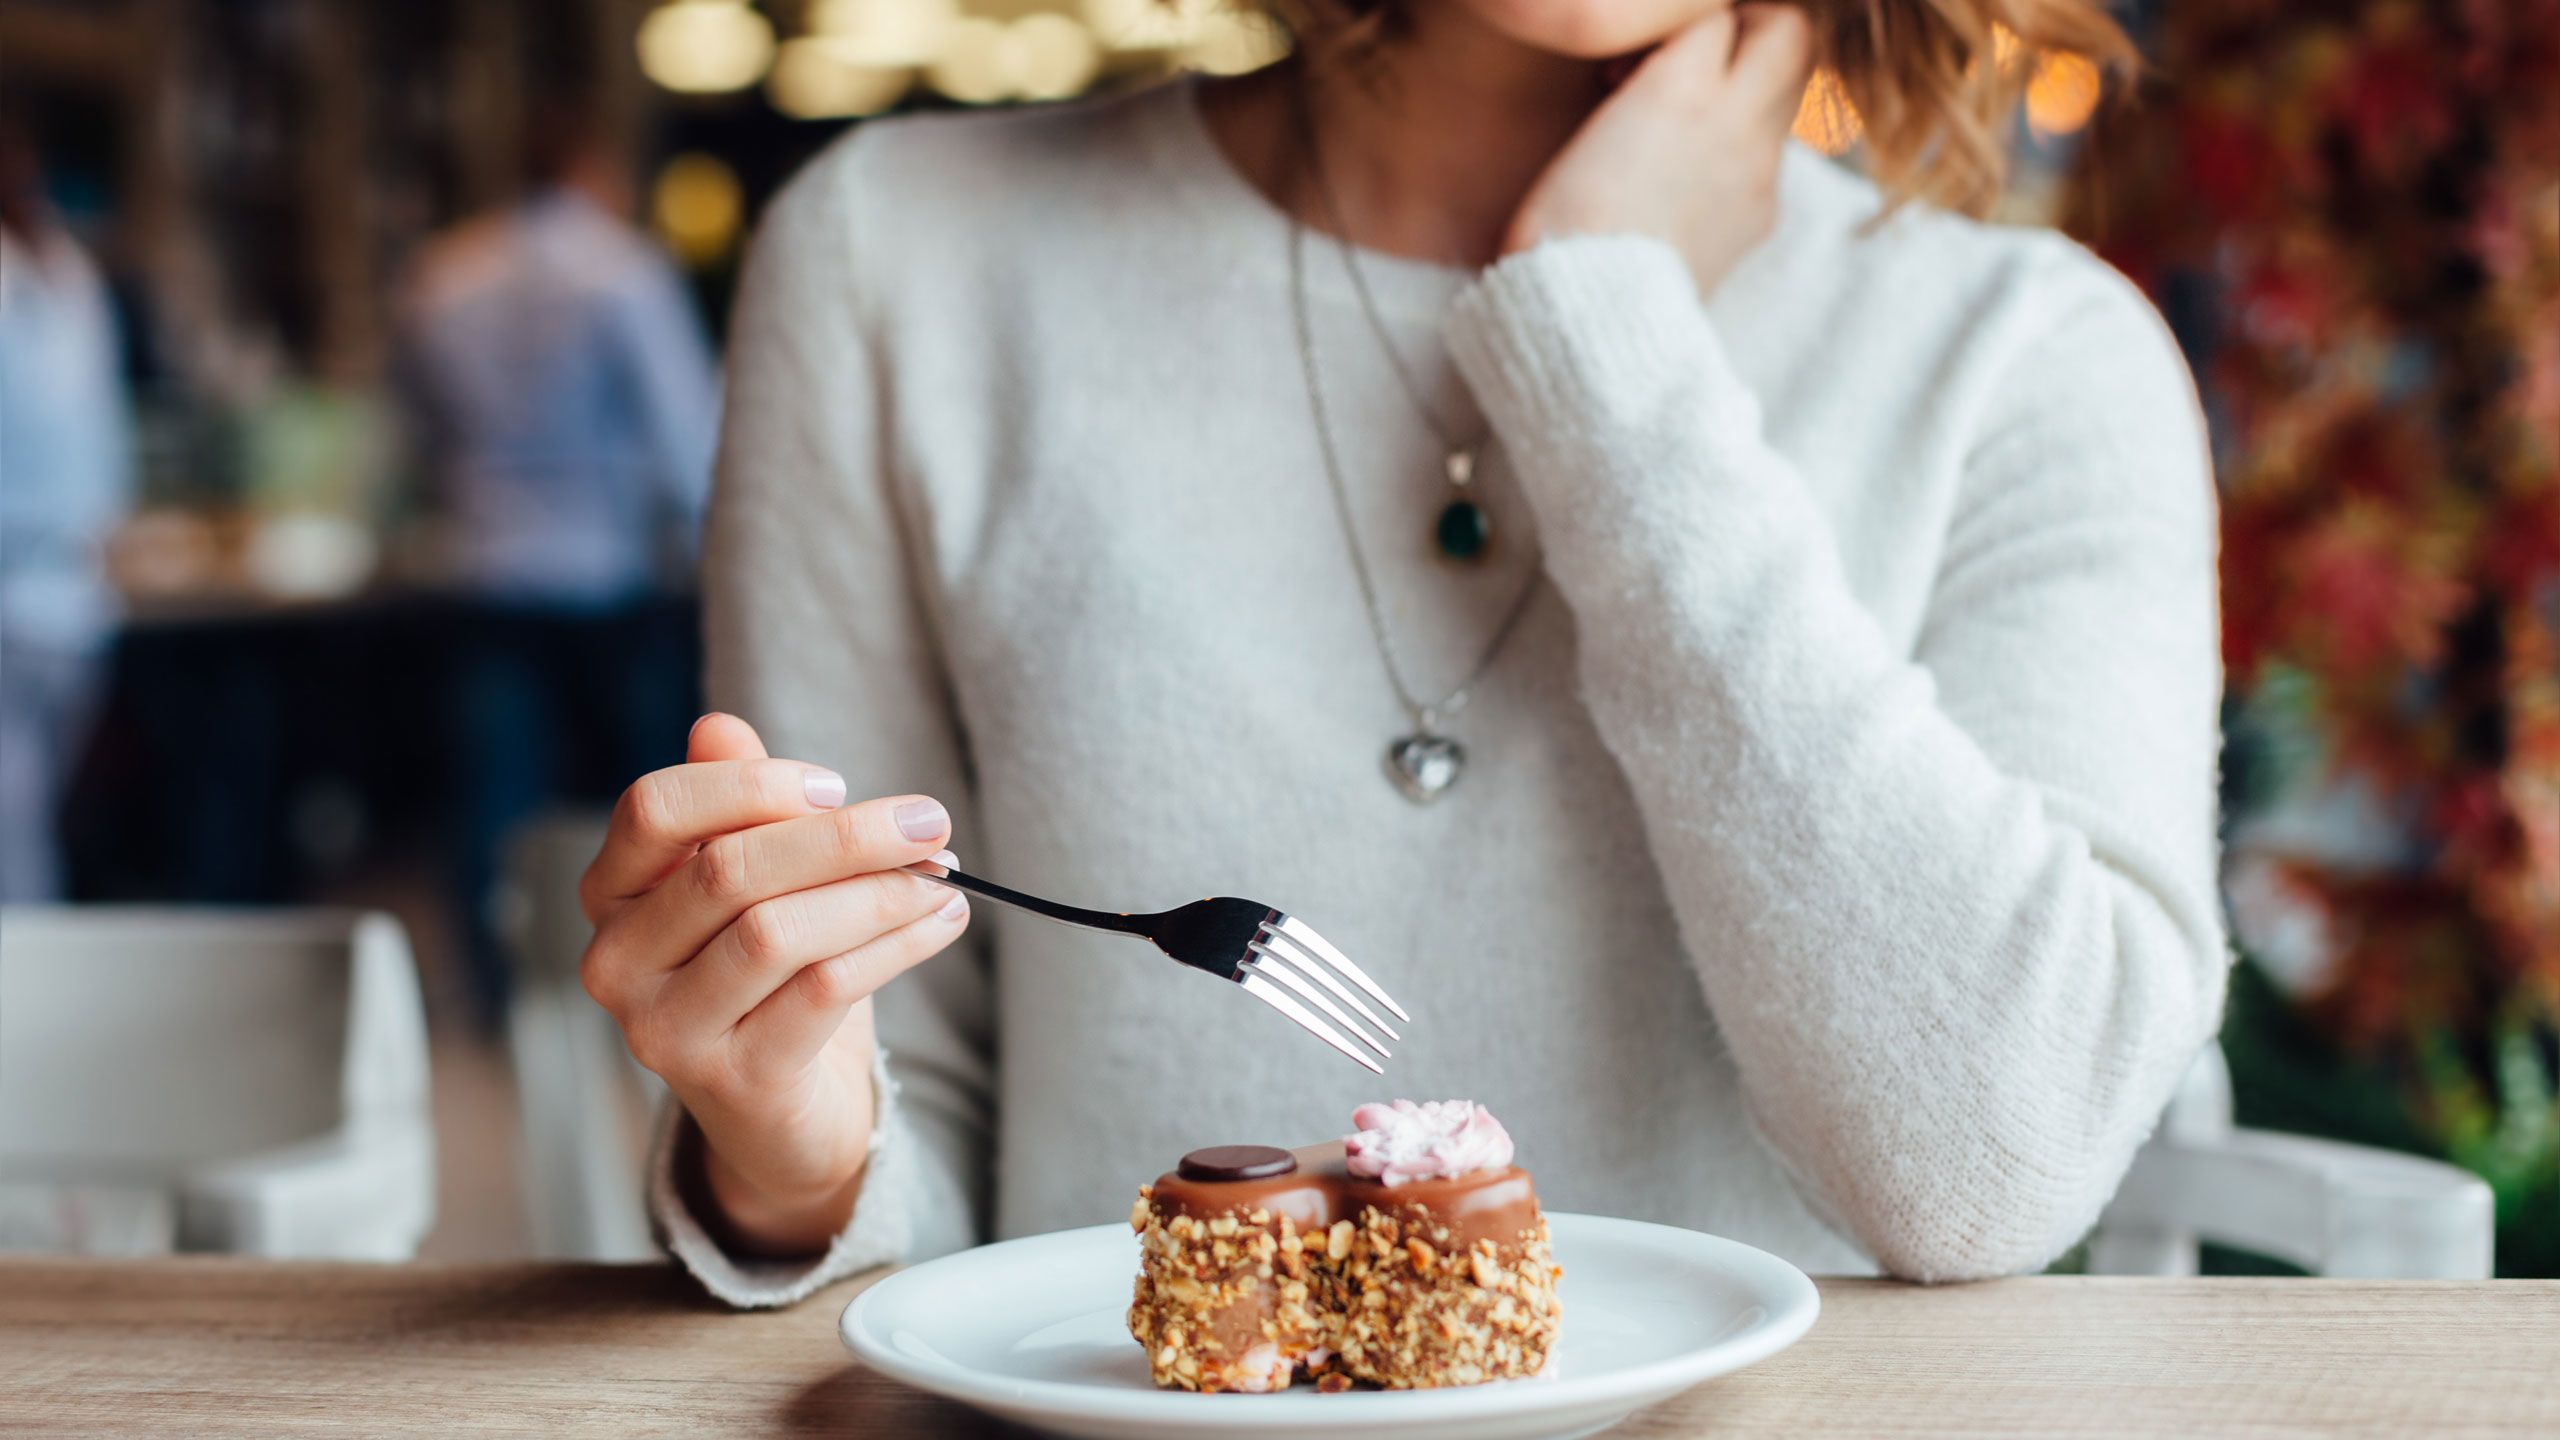 7 Effortless Ways to Cut Sugar from Your Diet